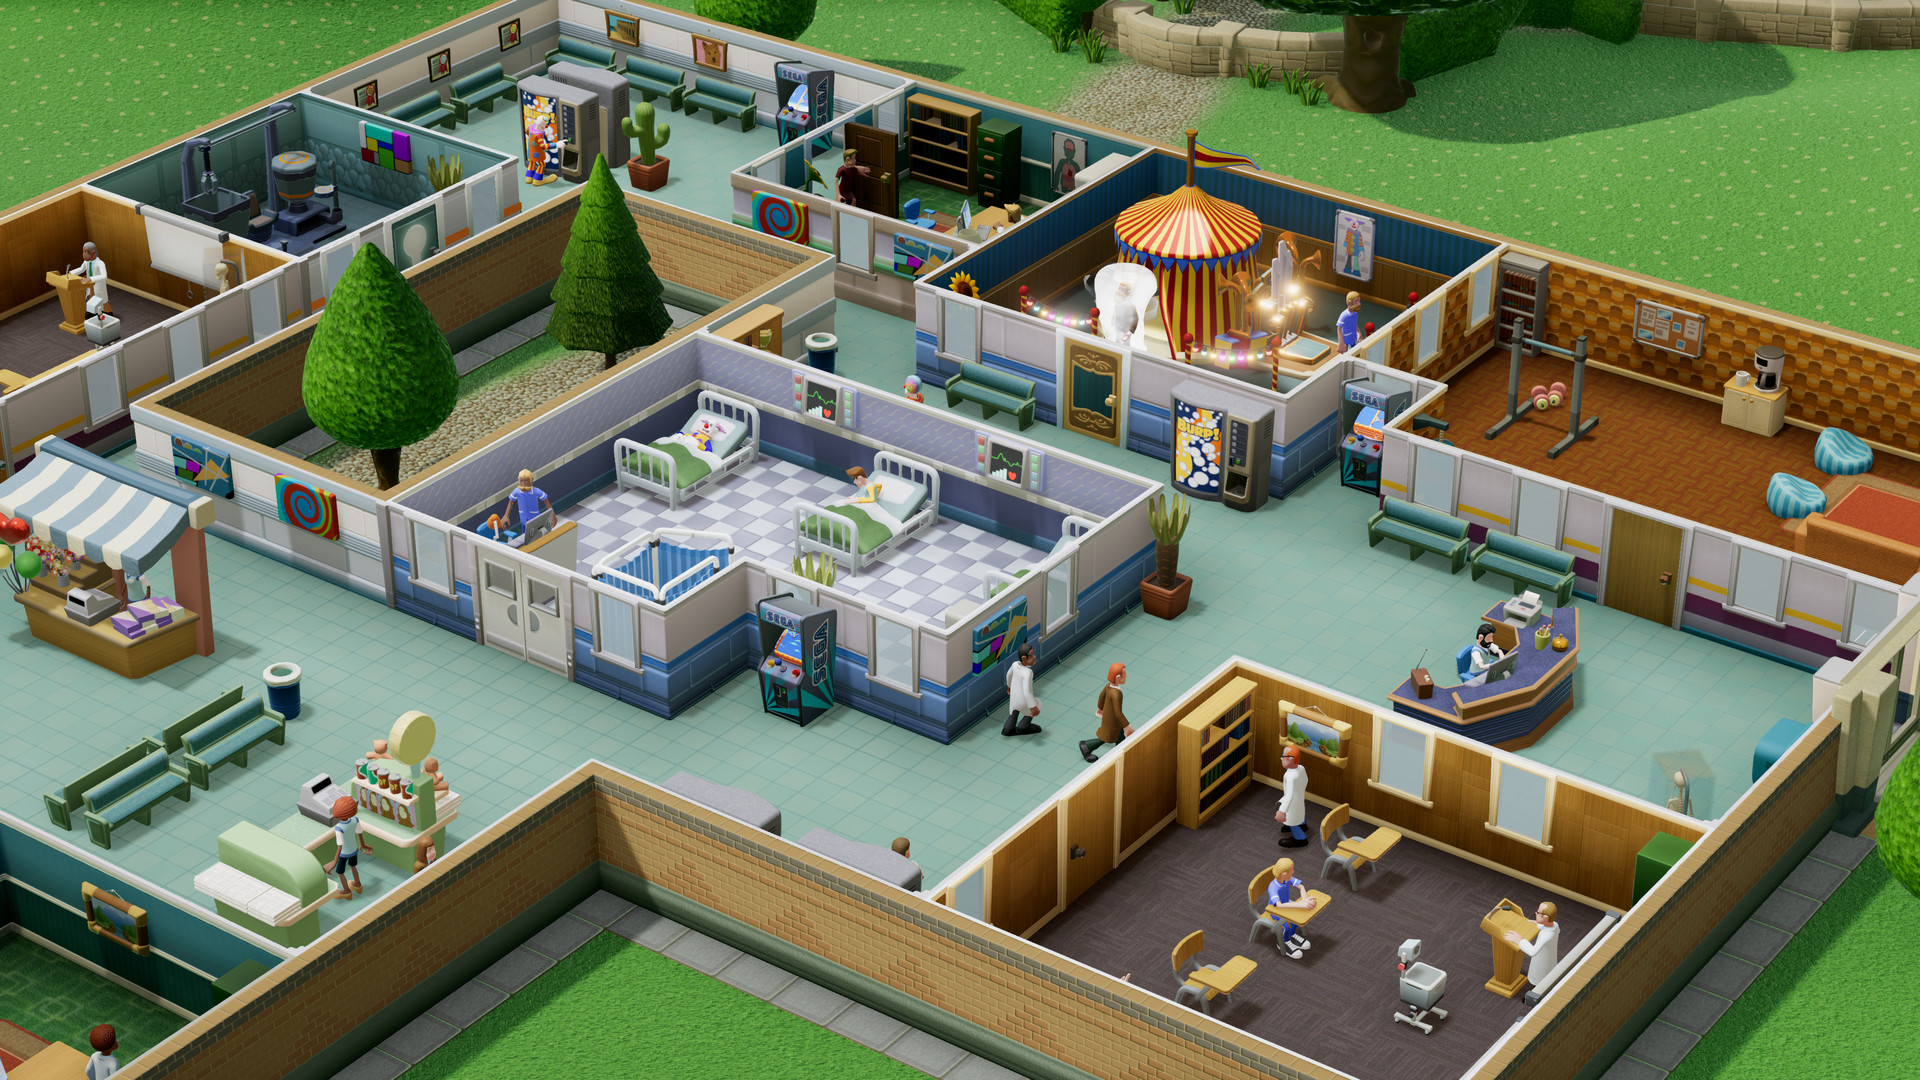 twopointhospital-4